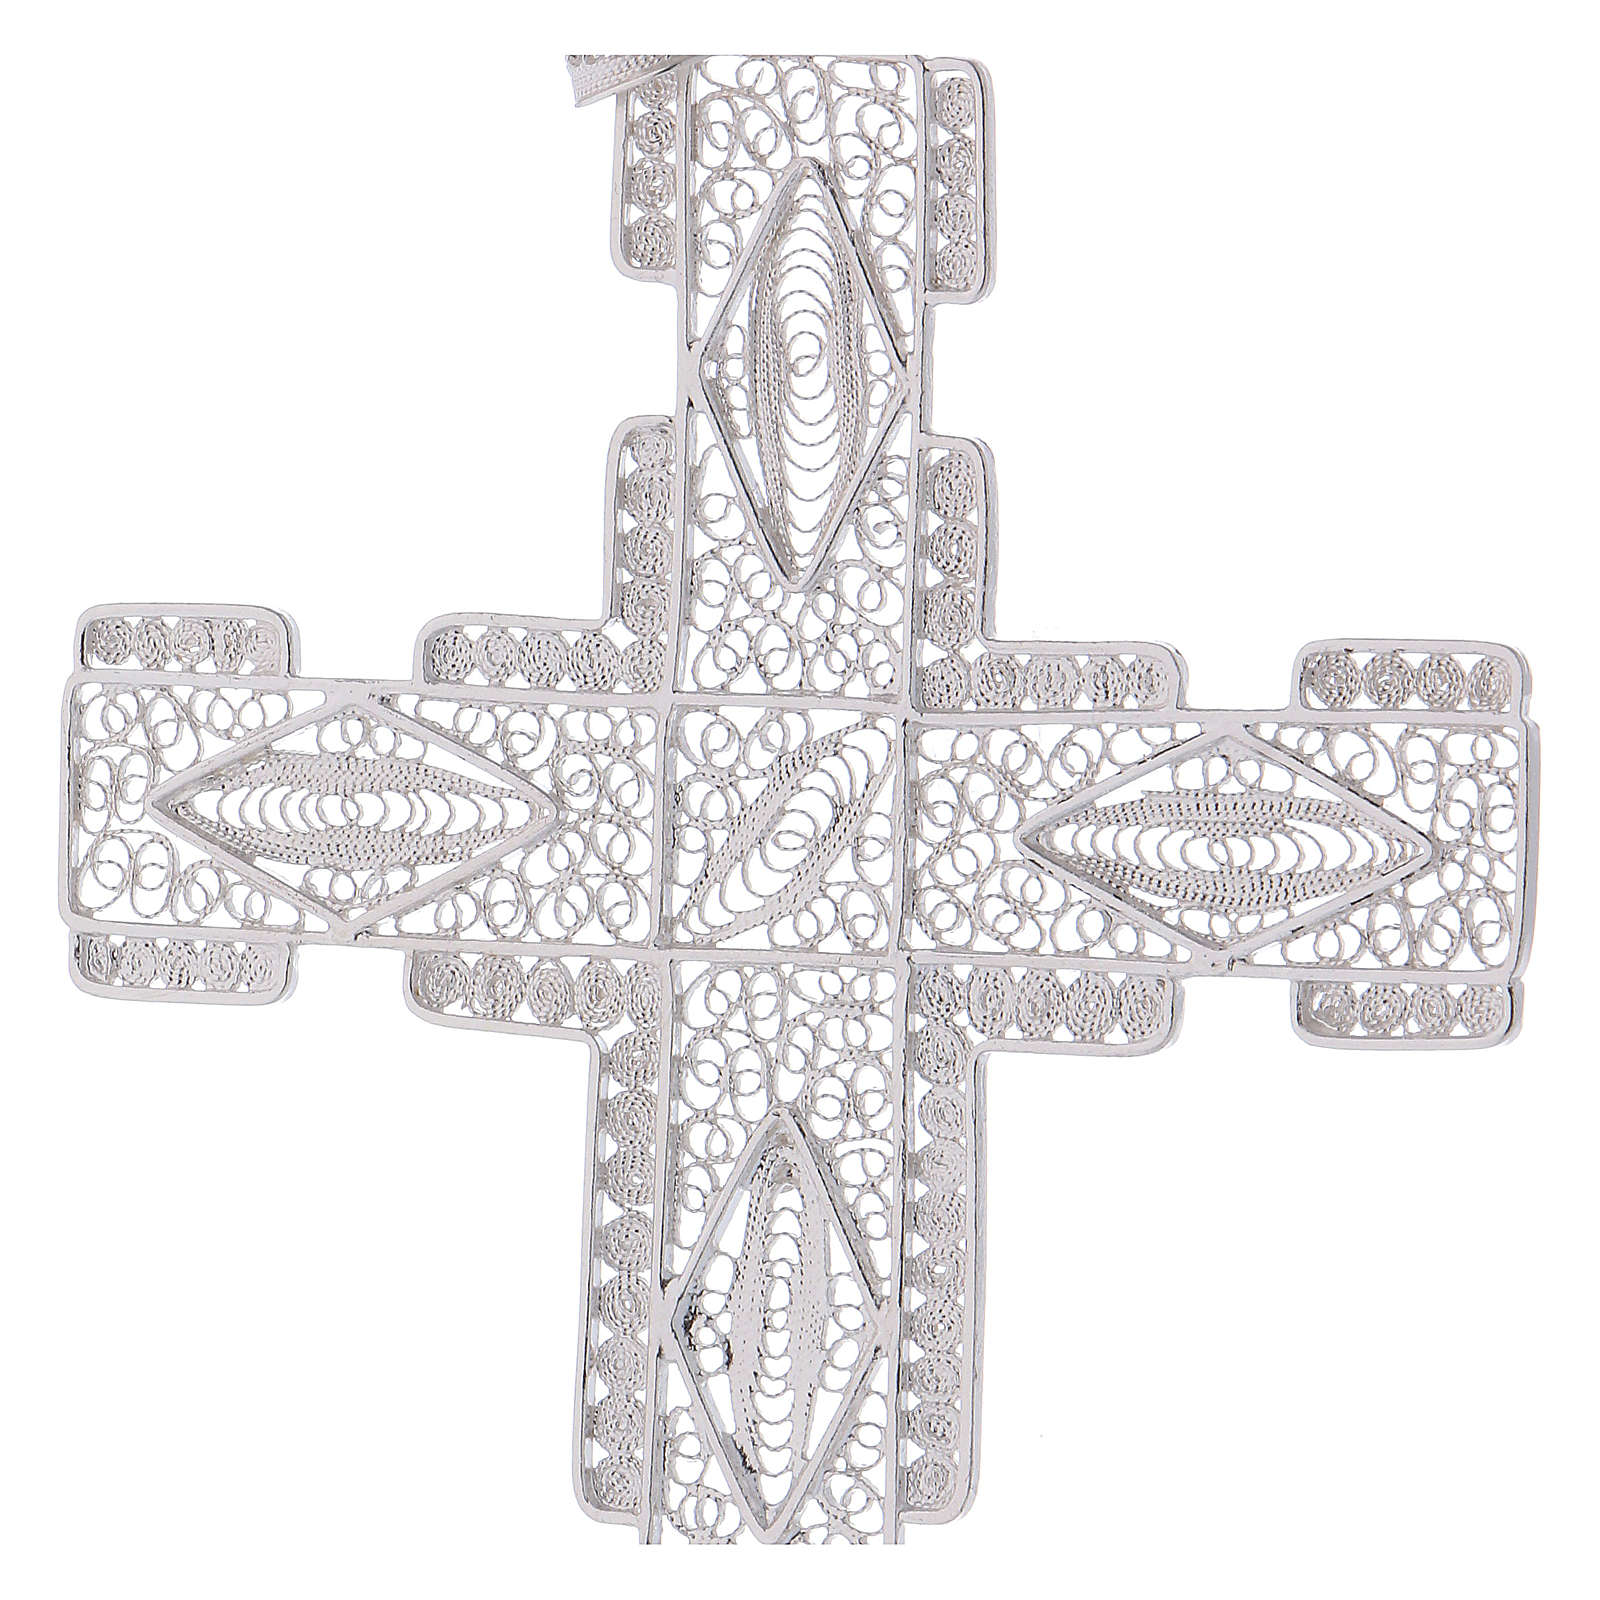 Pectoral Cross made of silver 800 filigree, stylized 3